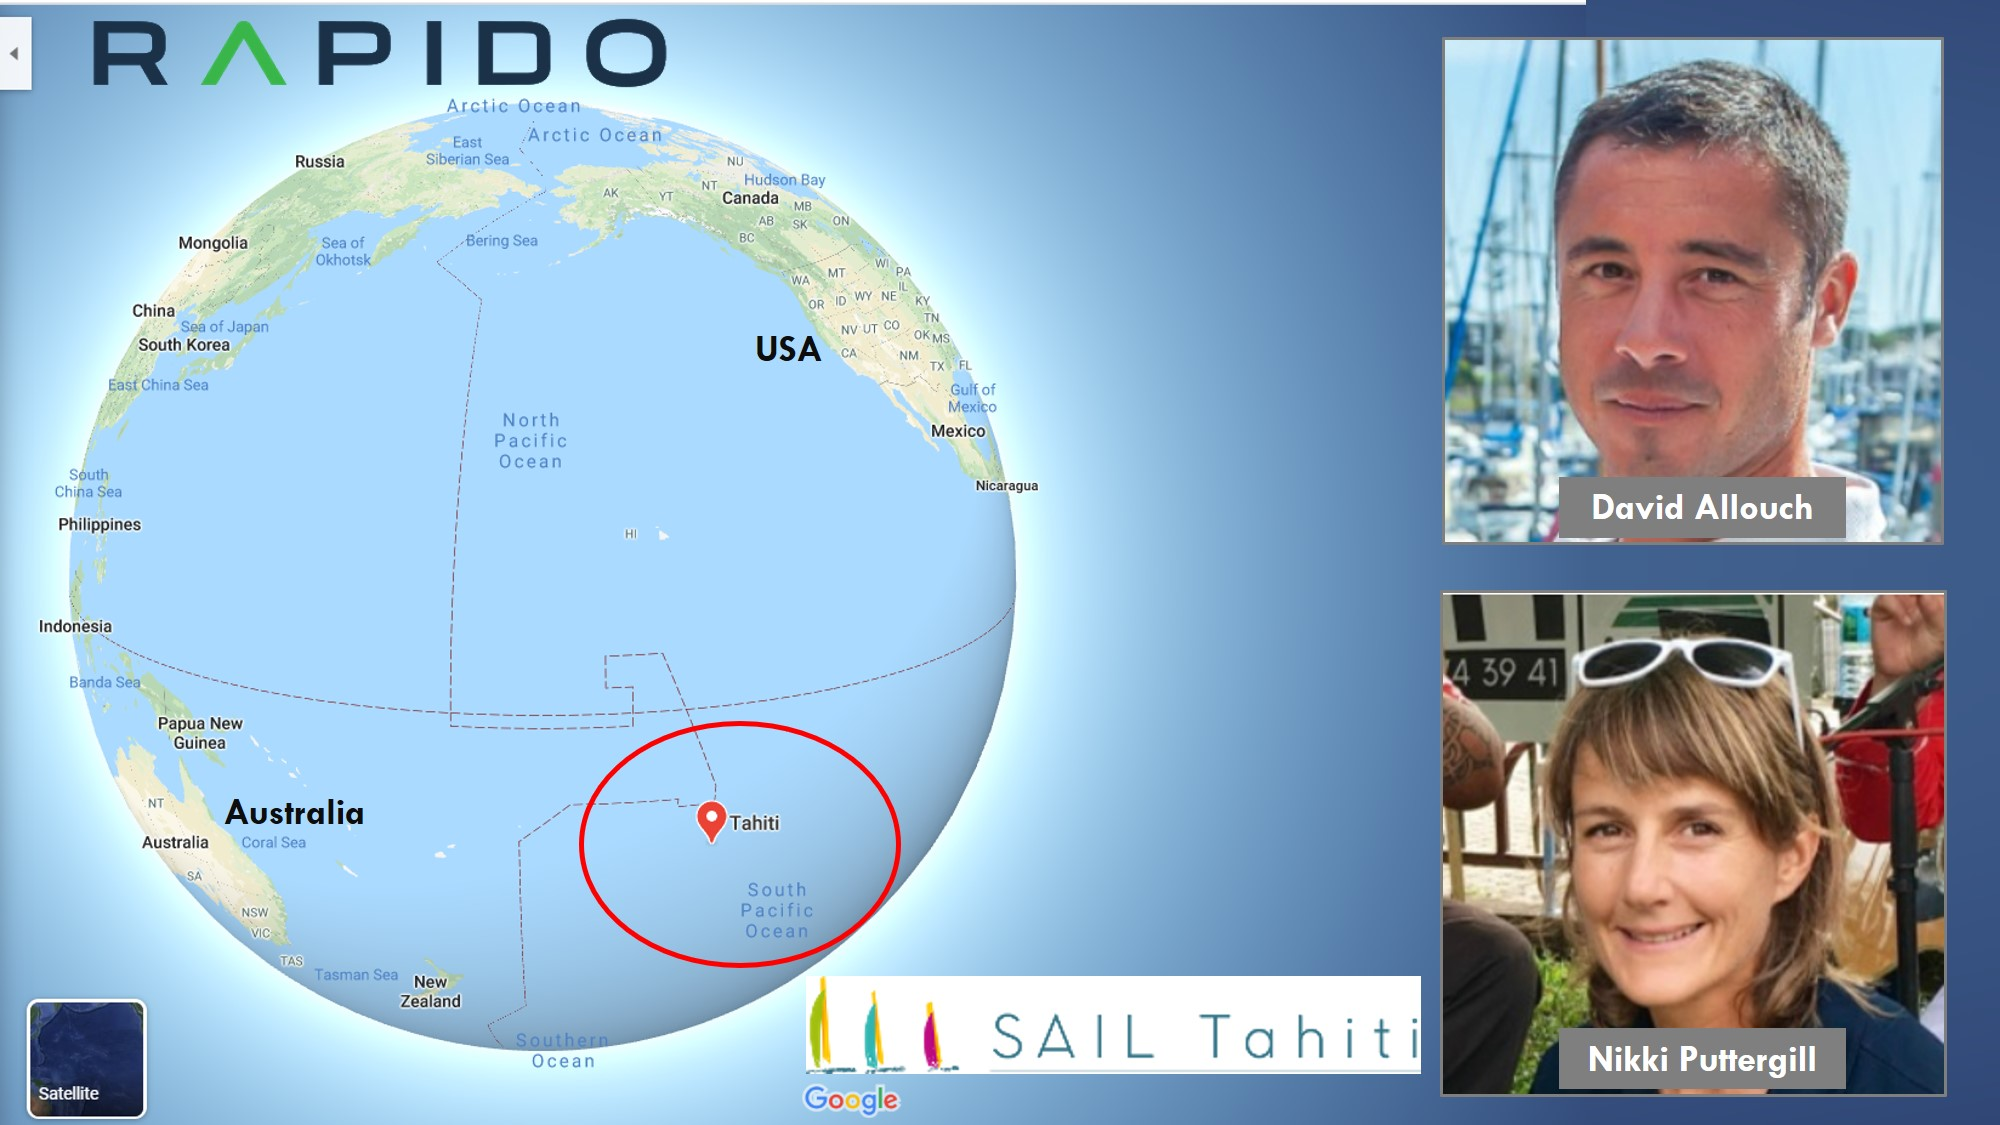 Rapido appoints dealer for Tahiti and French Polynesia